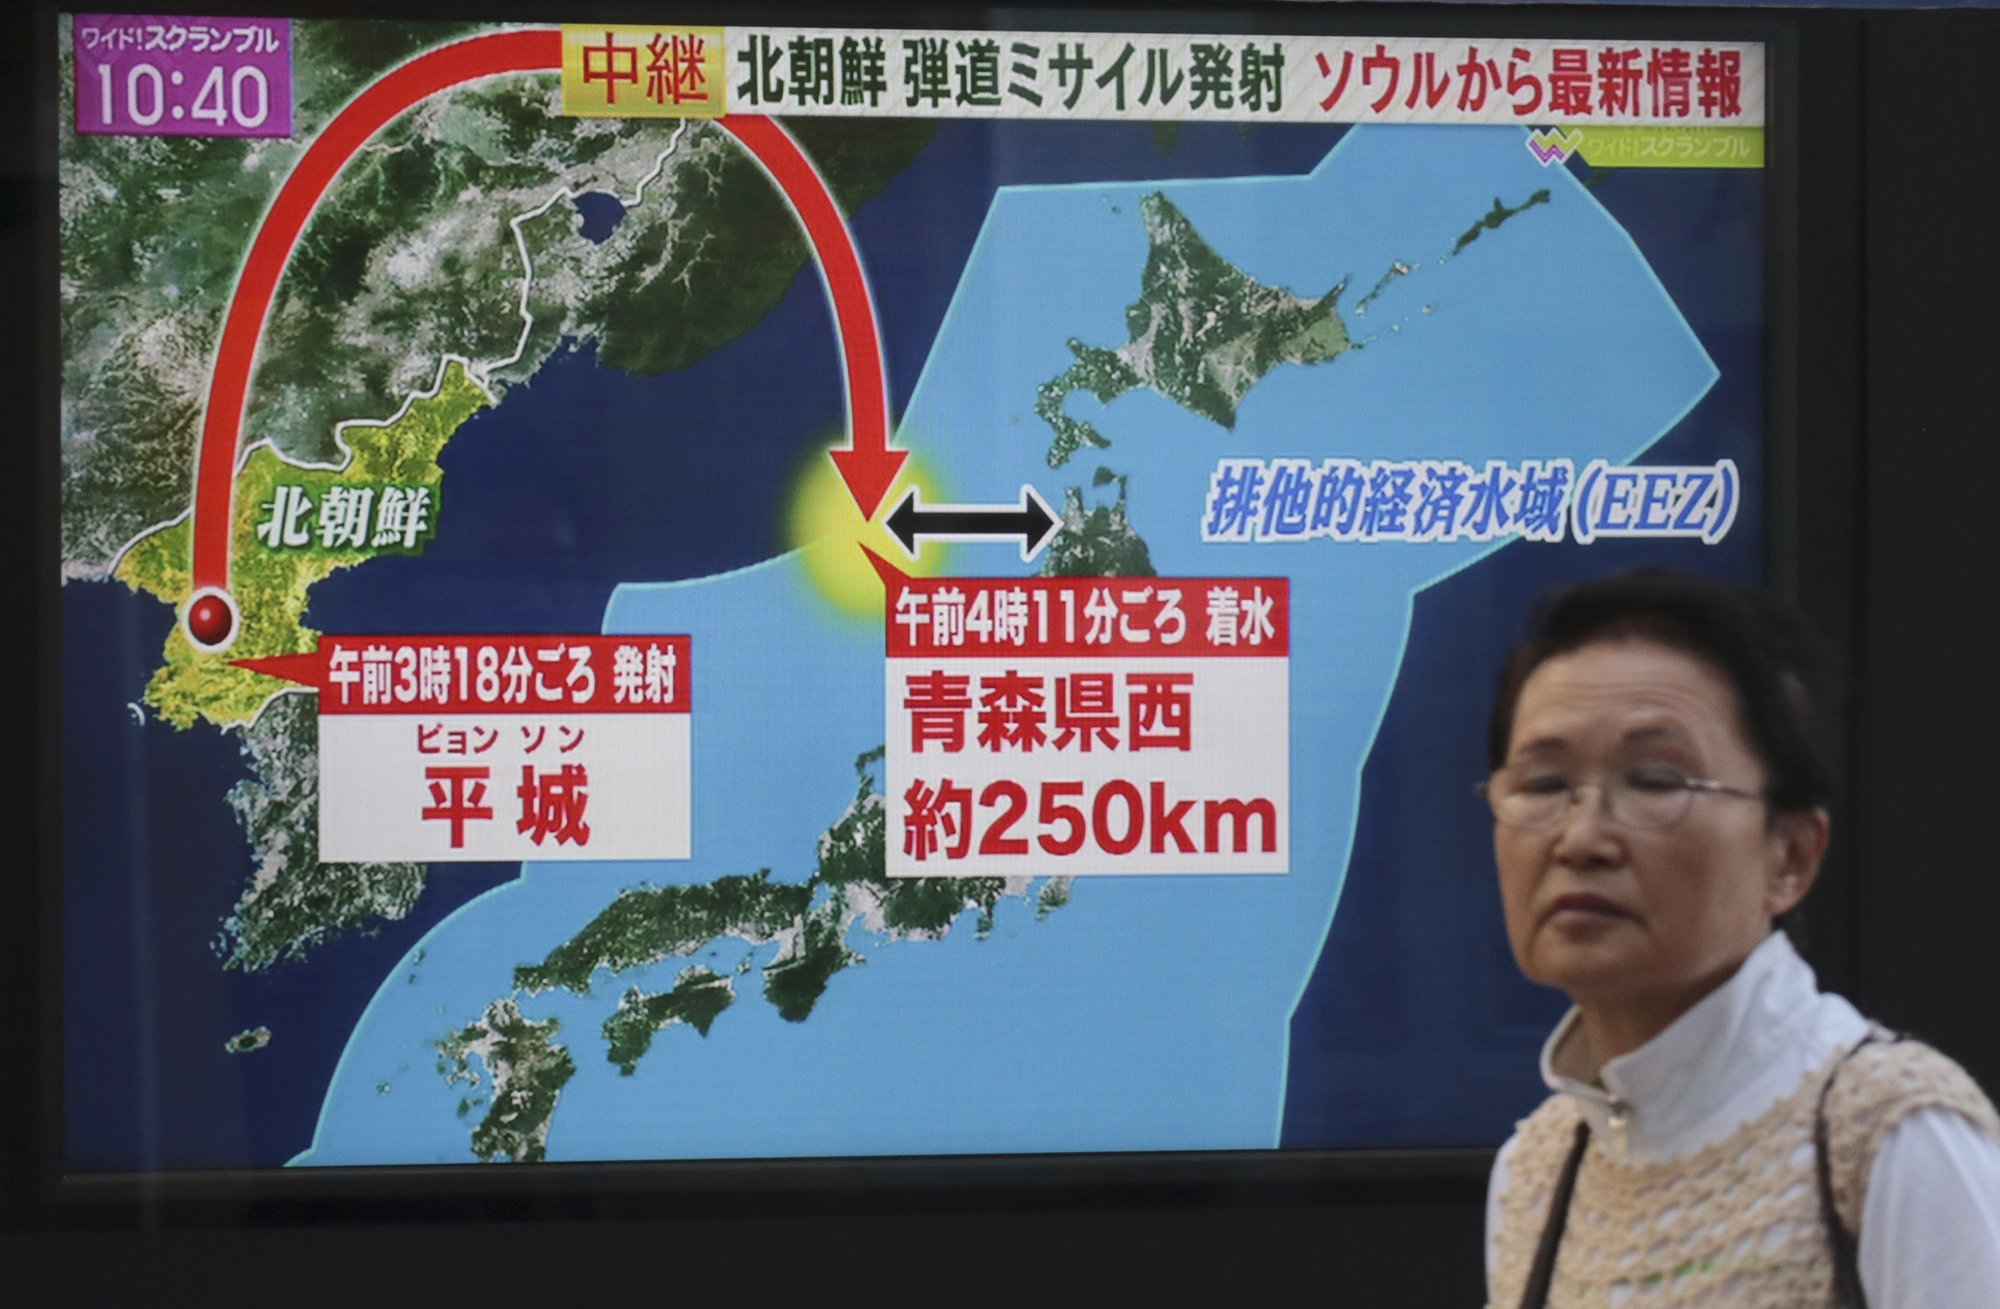 NKorea launches ICBM in possibly its longest-range test yet